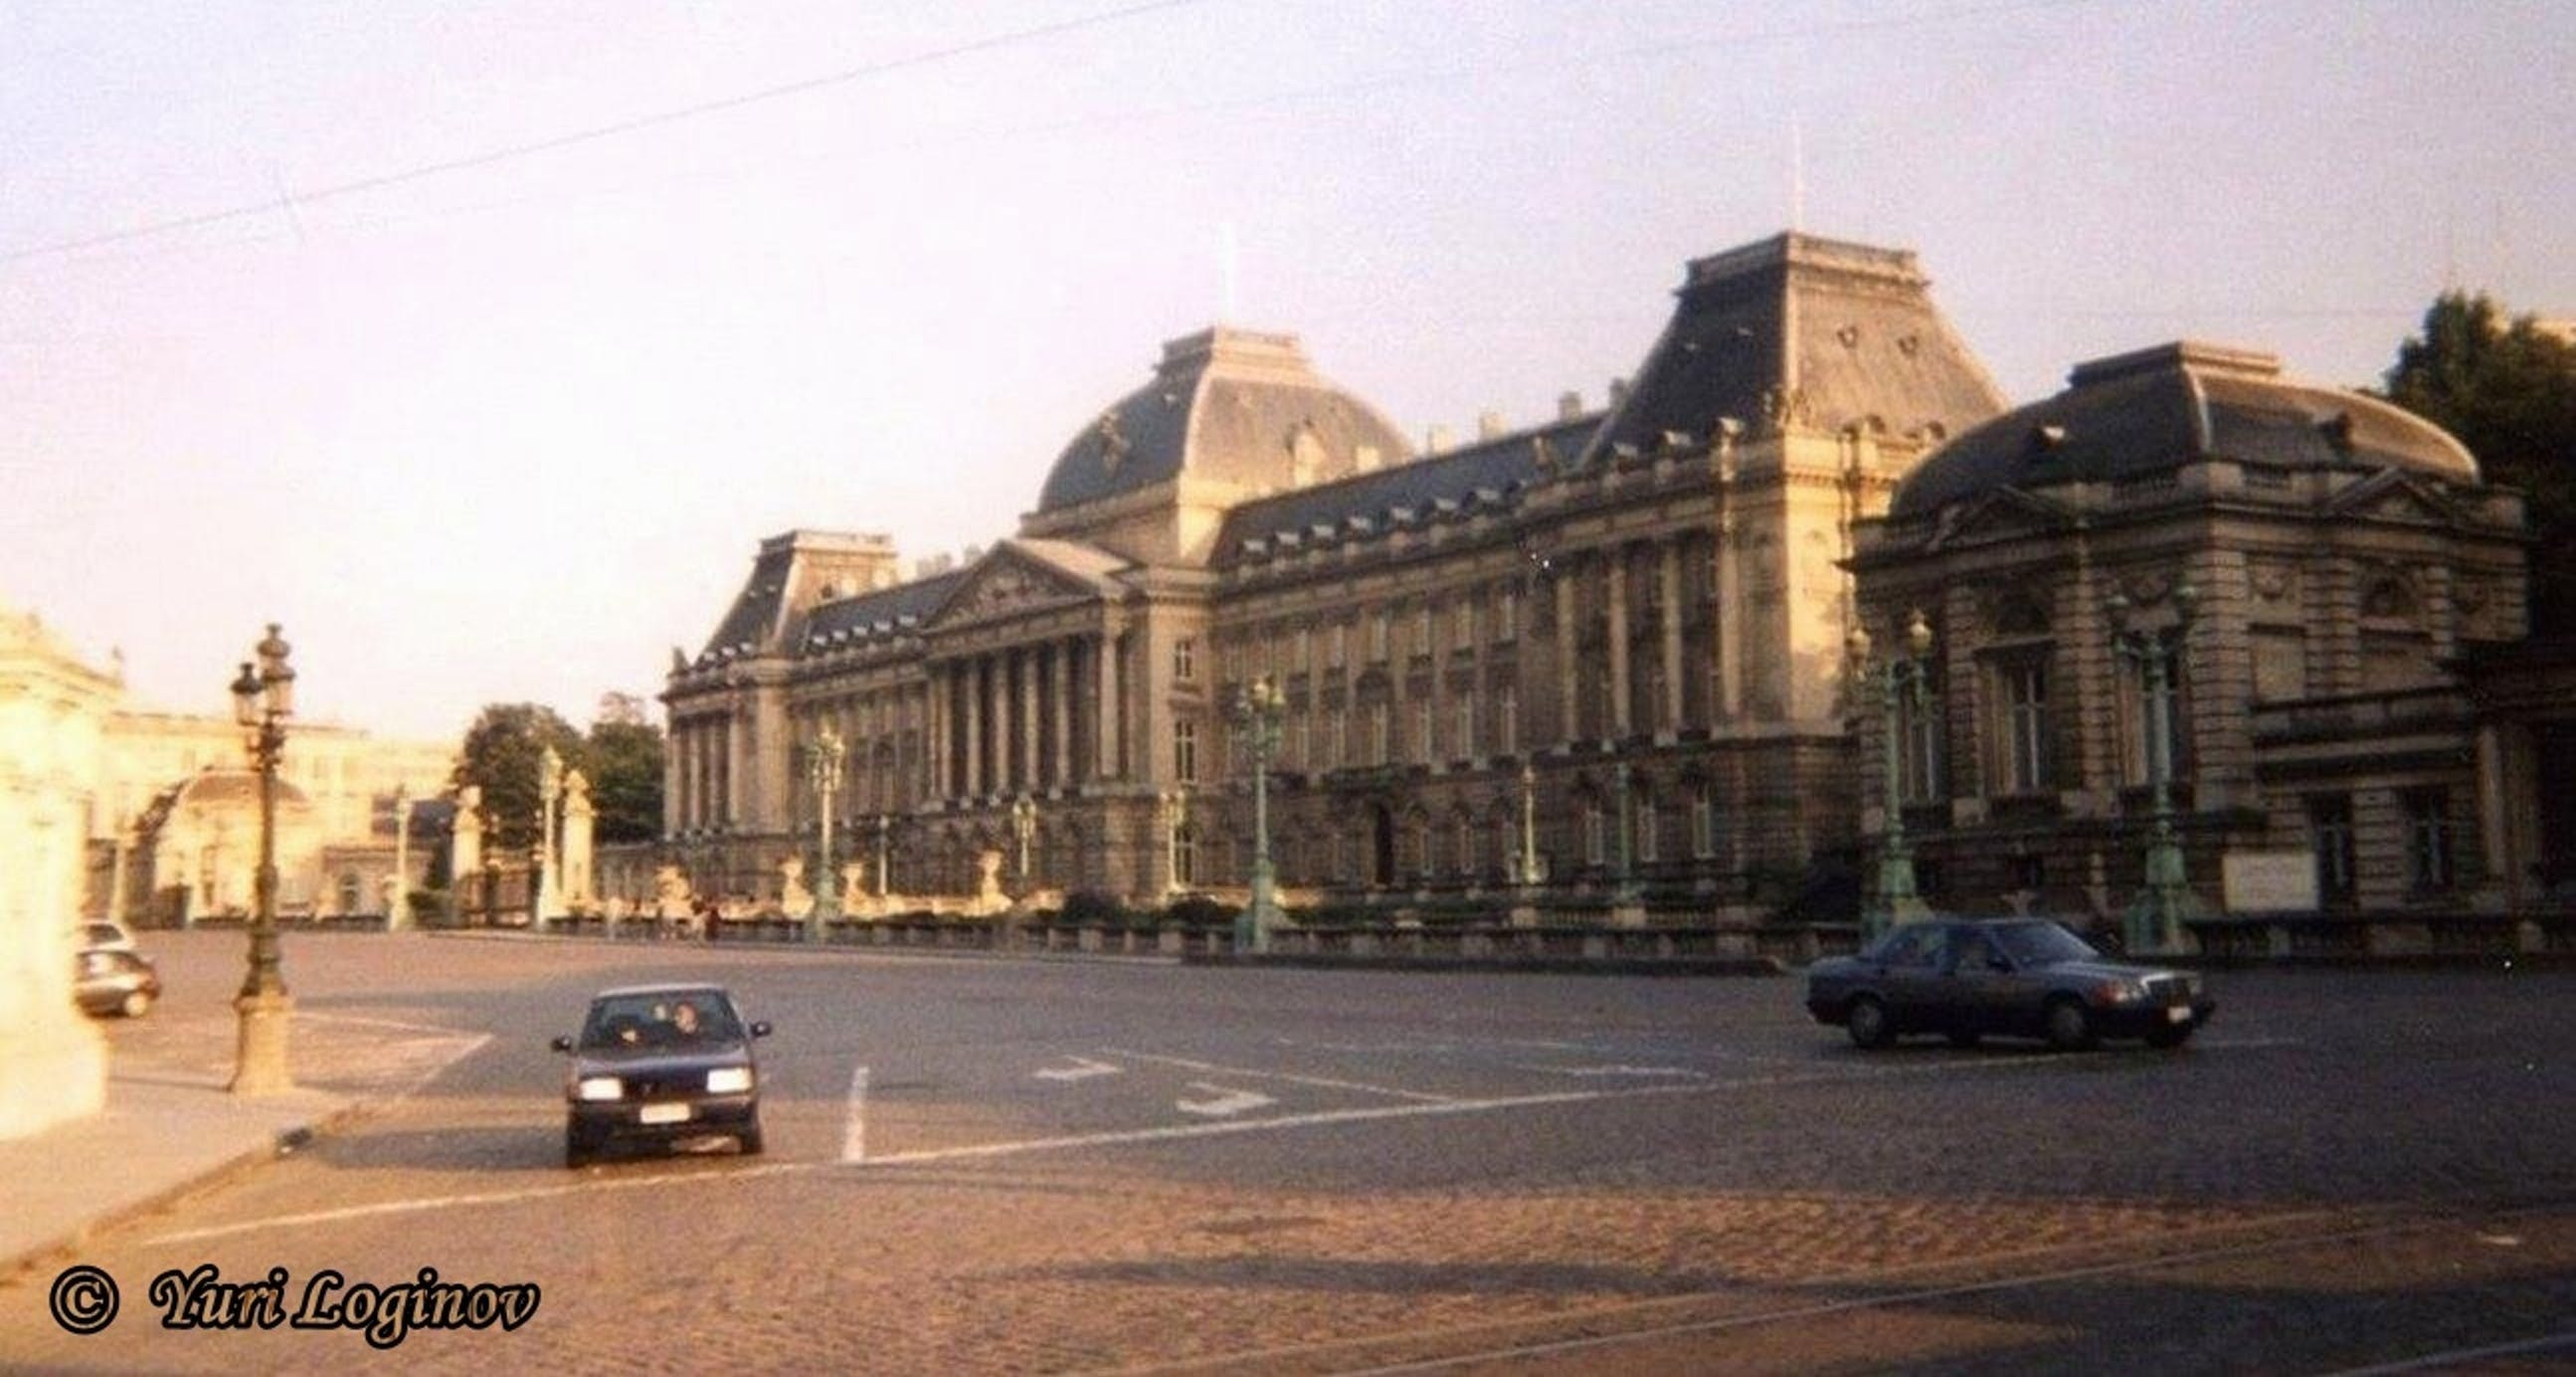 Free stock photo of brussels, Belgium, royal palace, belgique